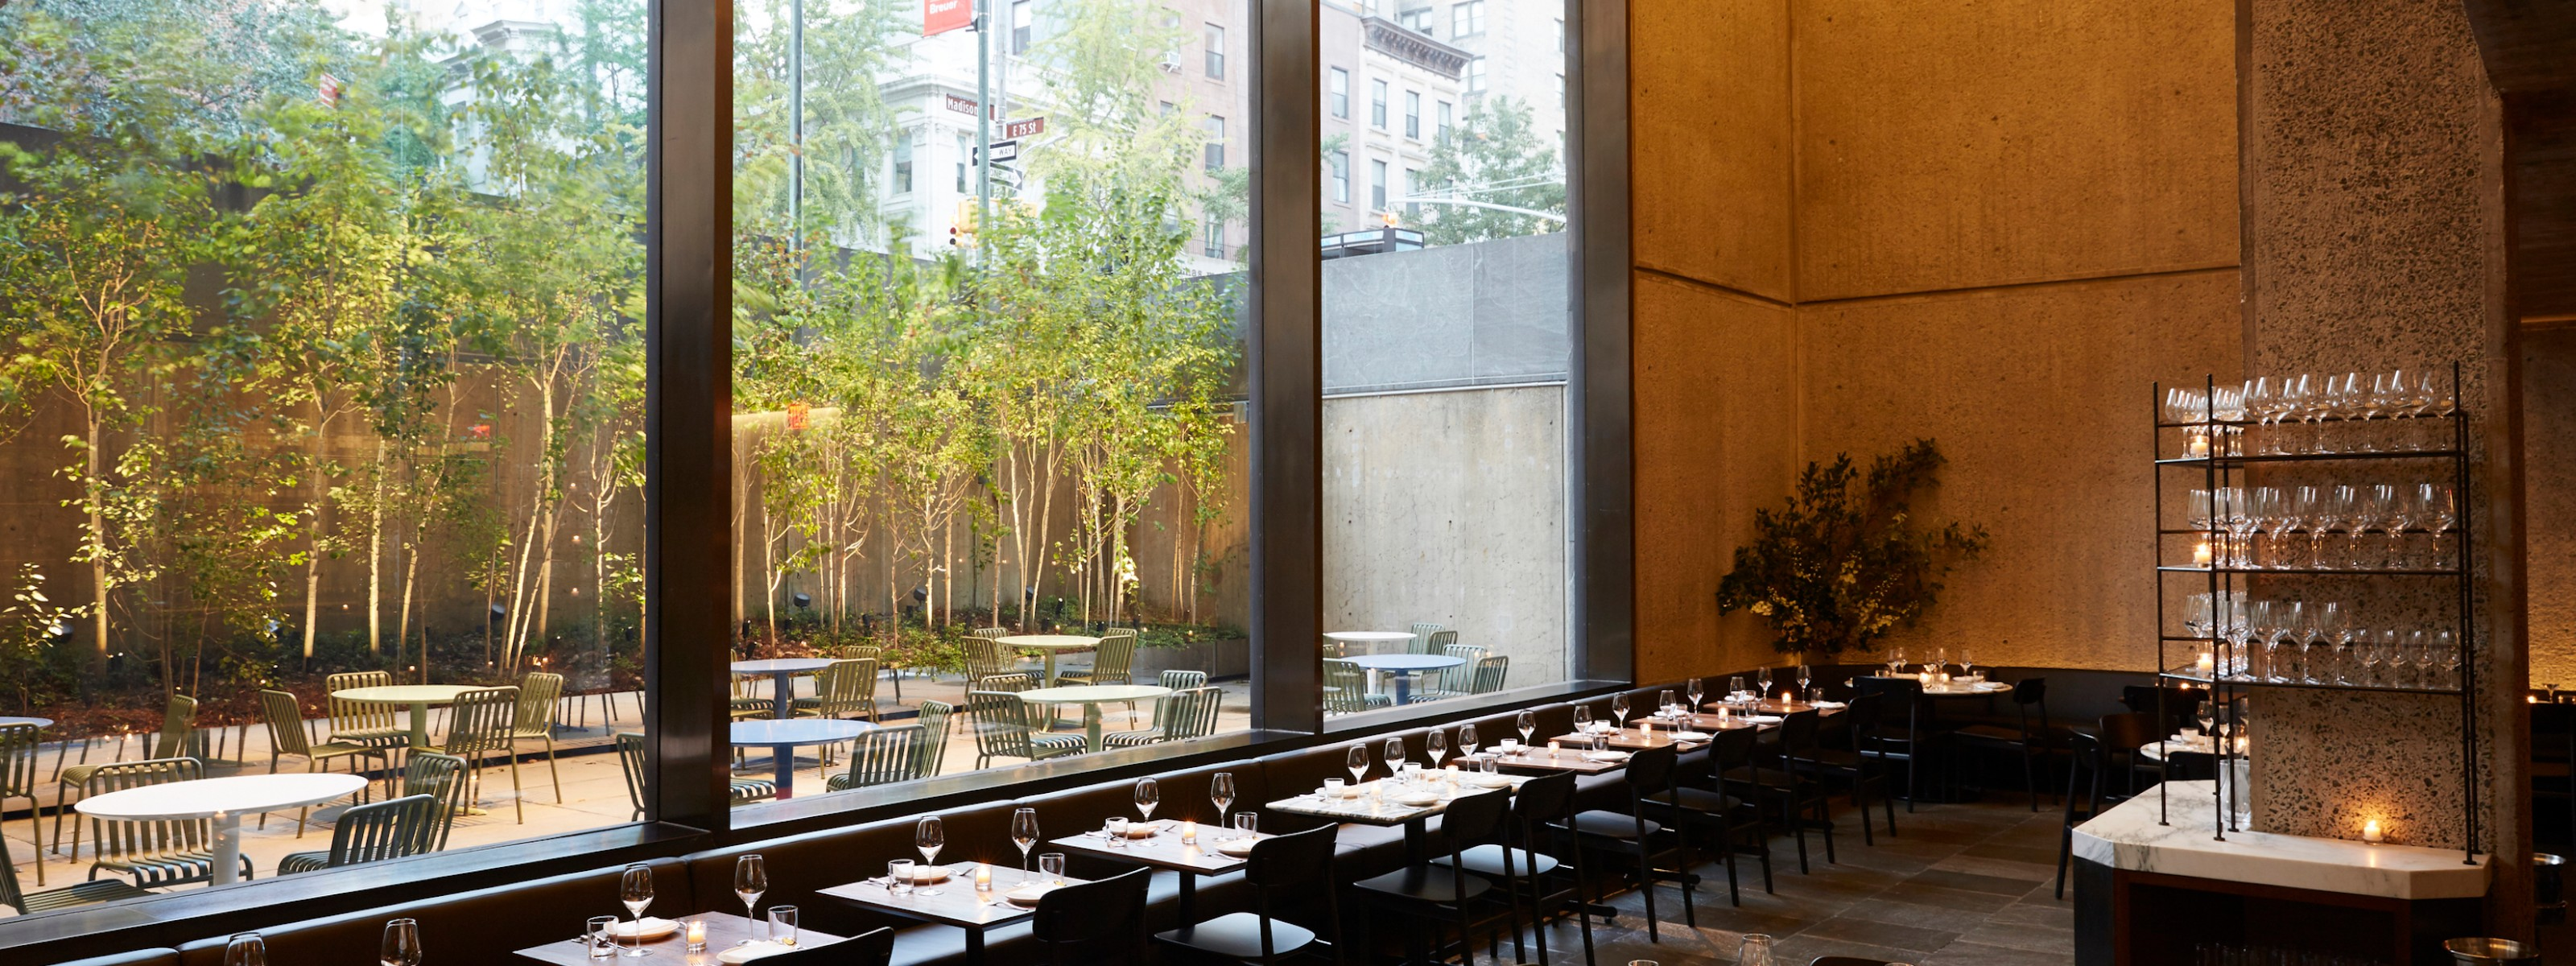 Trattoria Dell'arte Nyc Reviews The Best Restaurants On The Upper East Side Upper East Side